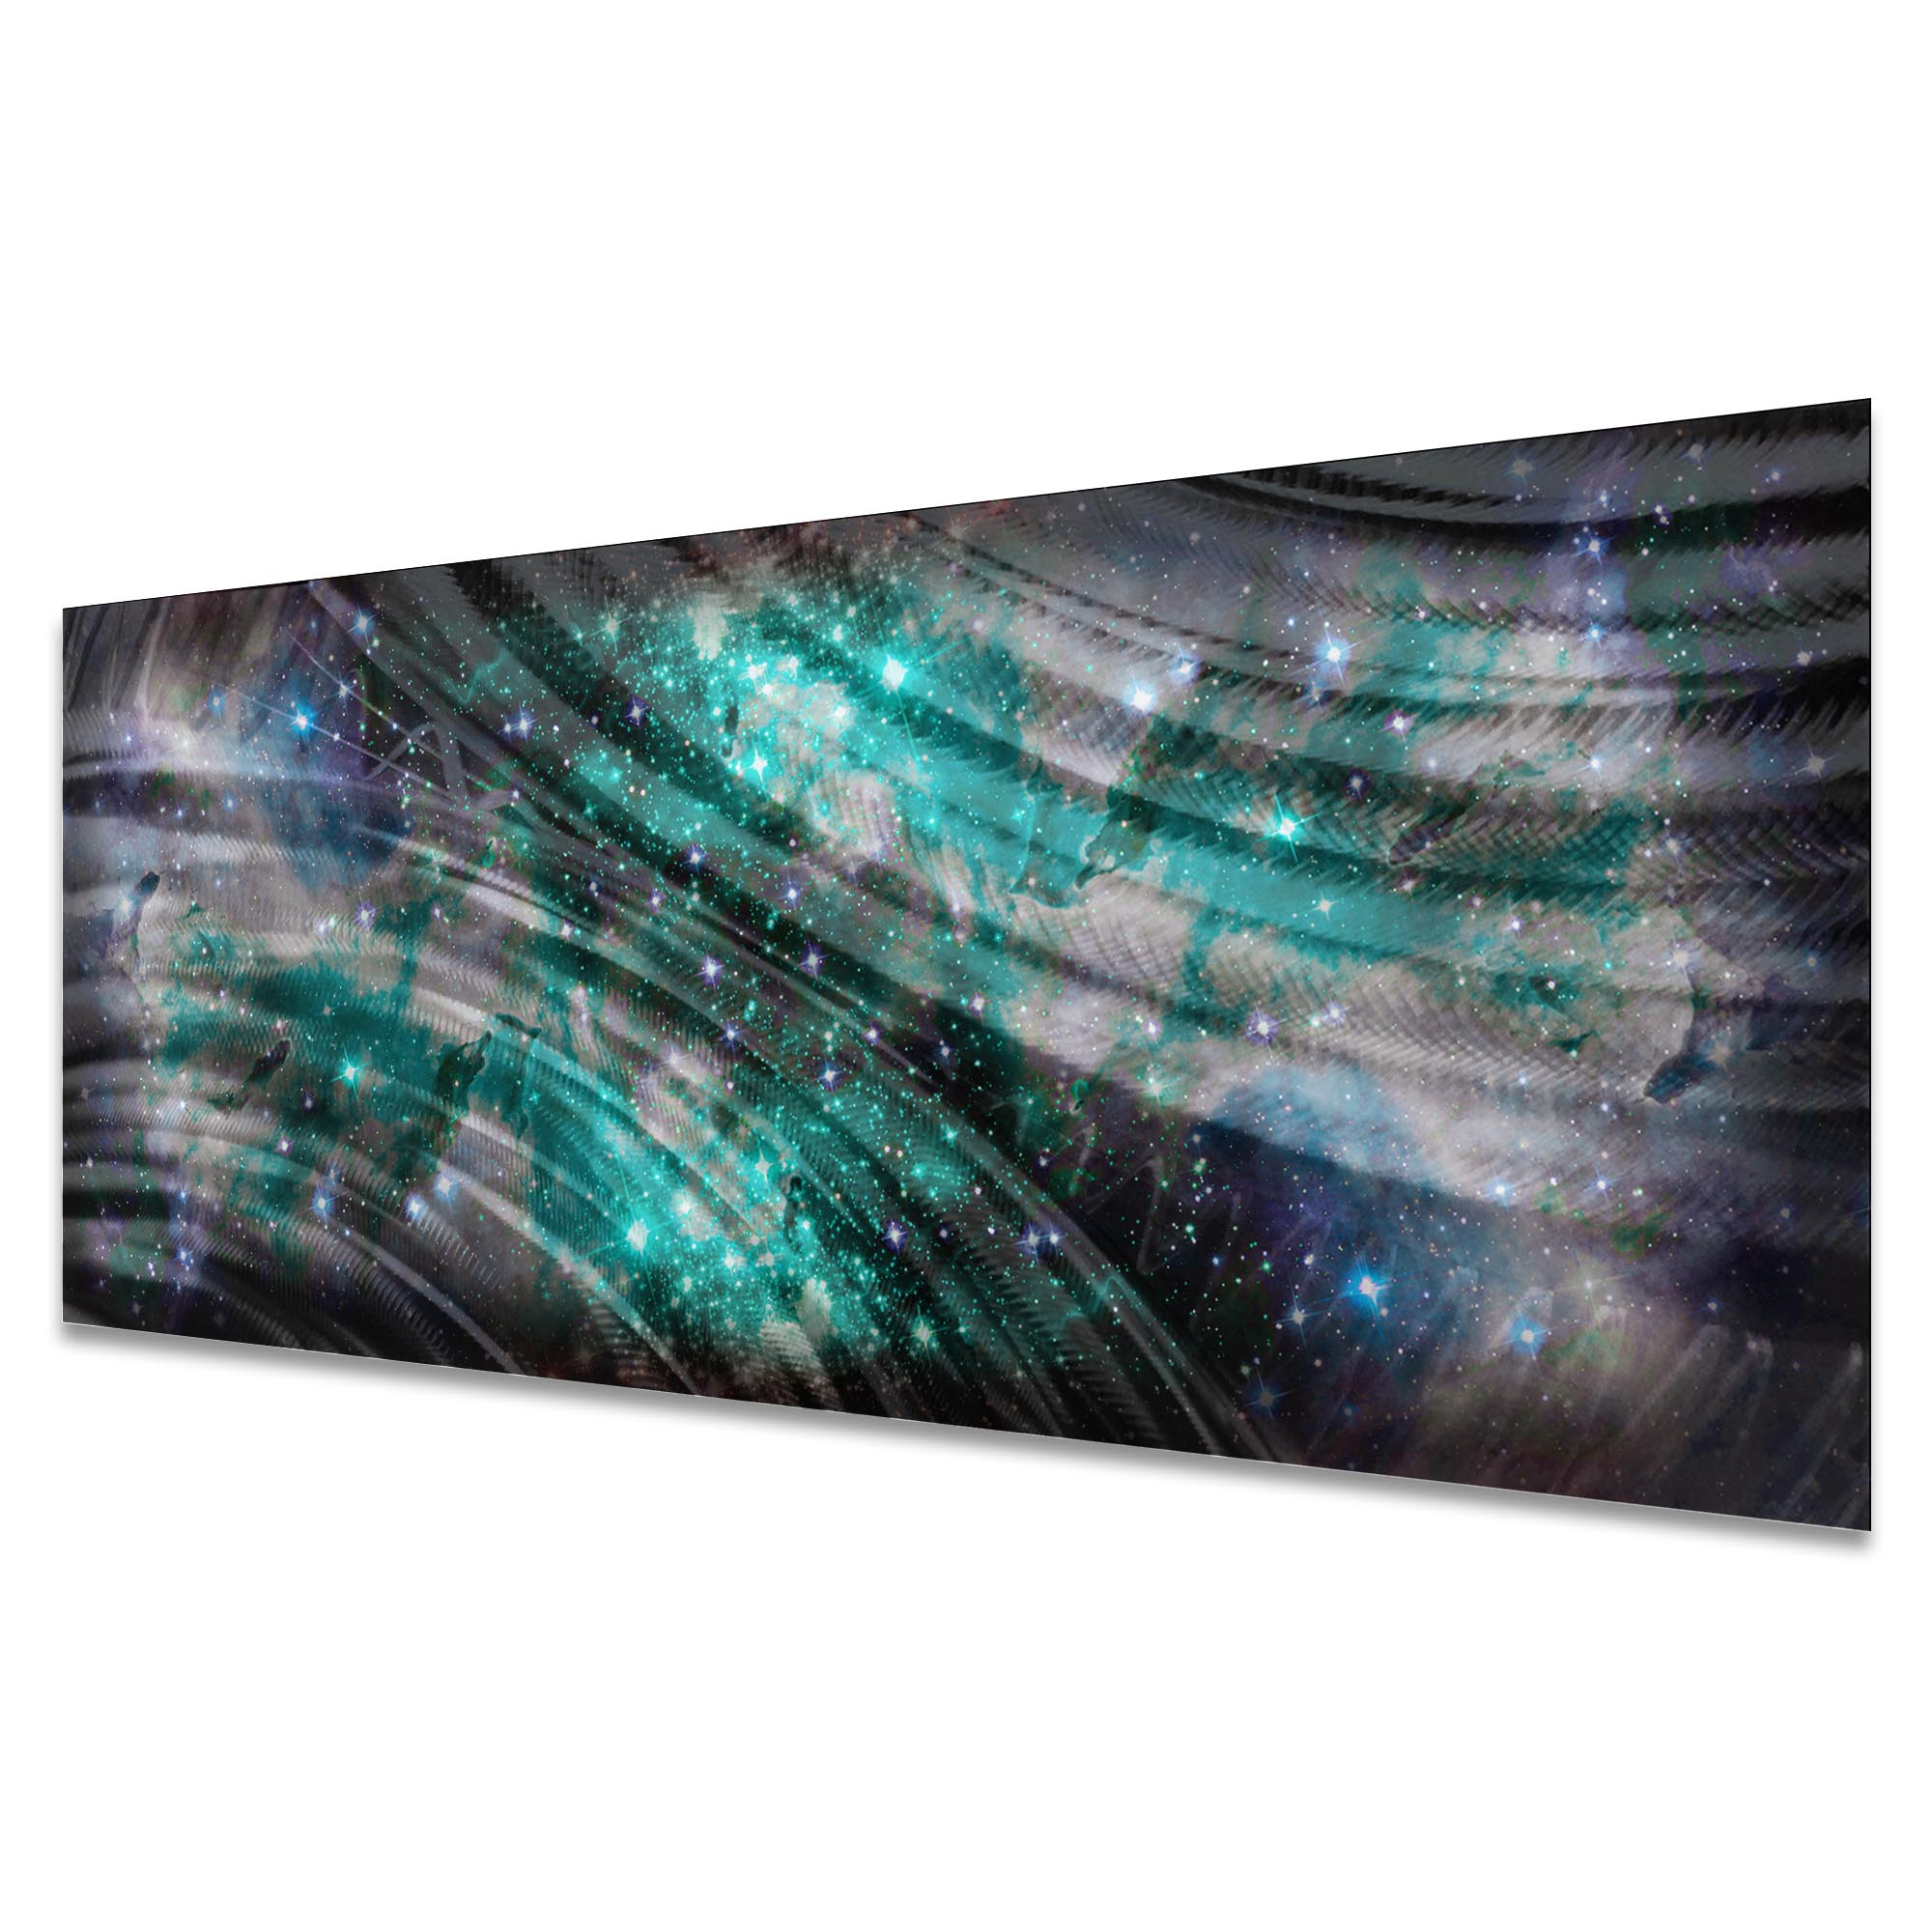 Cosmic Chill by Helena Martin - Original Abstract Art on Ground and Colored Metal - Image 2